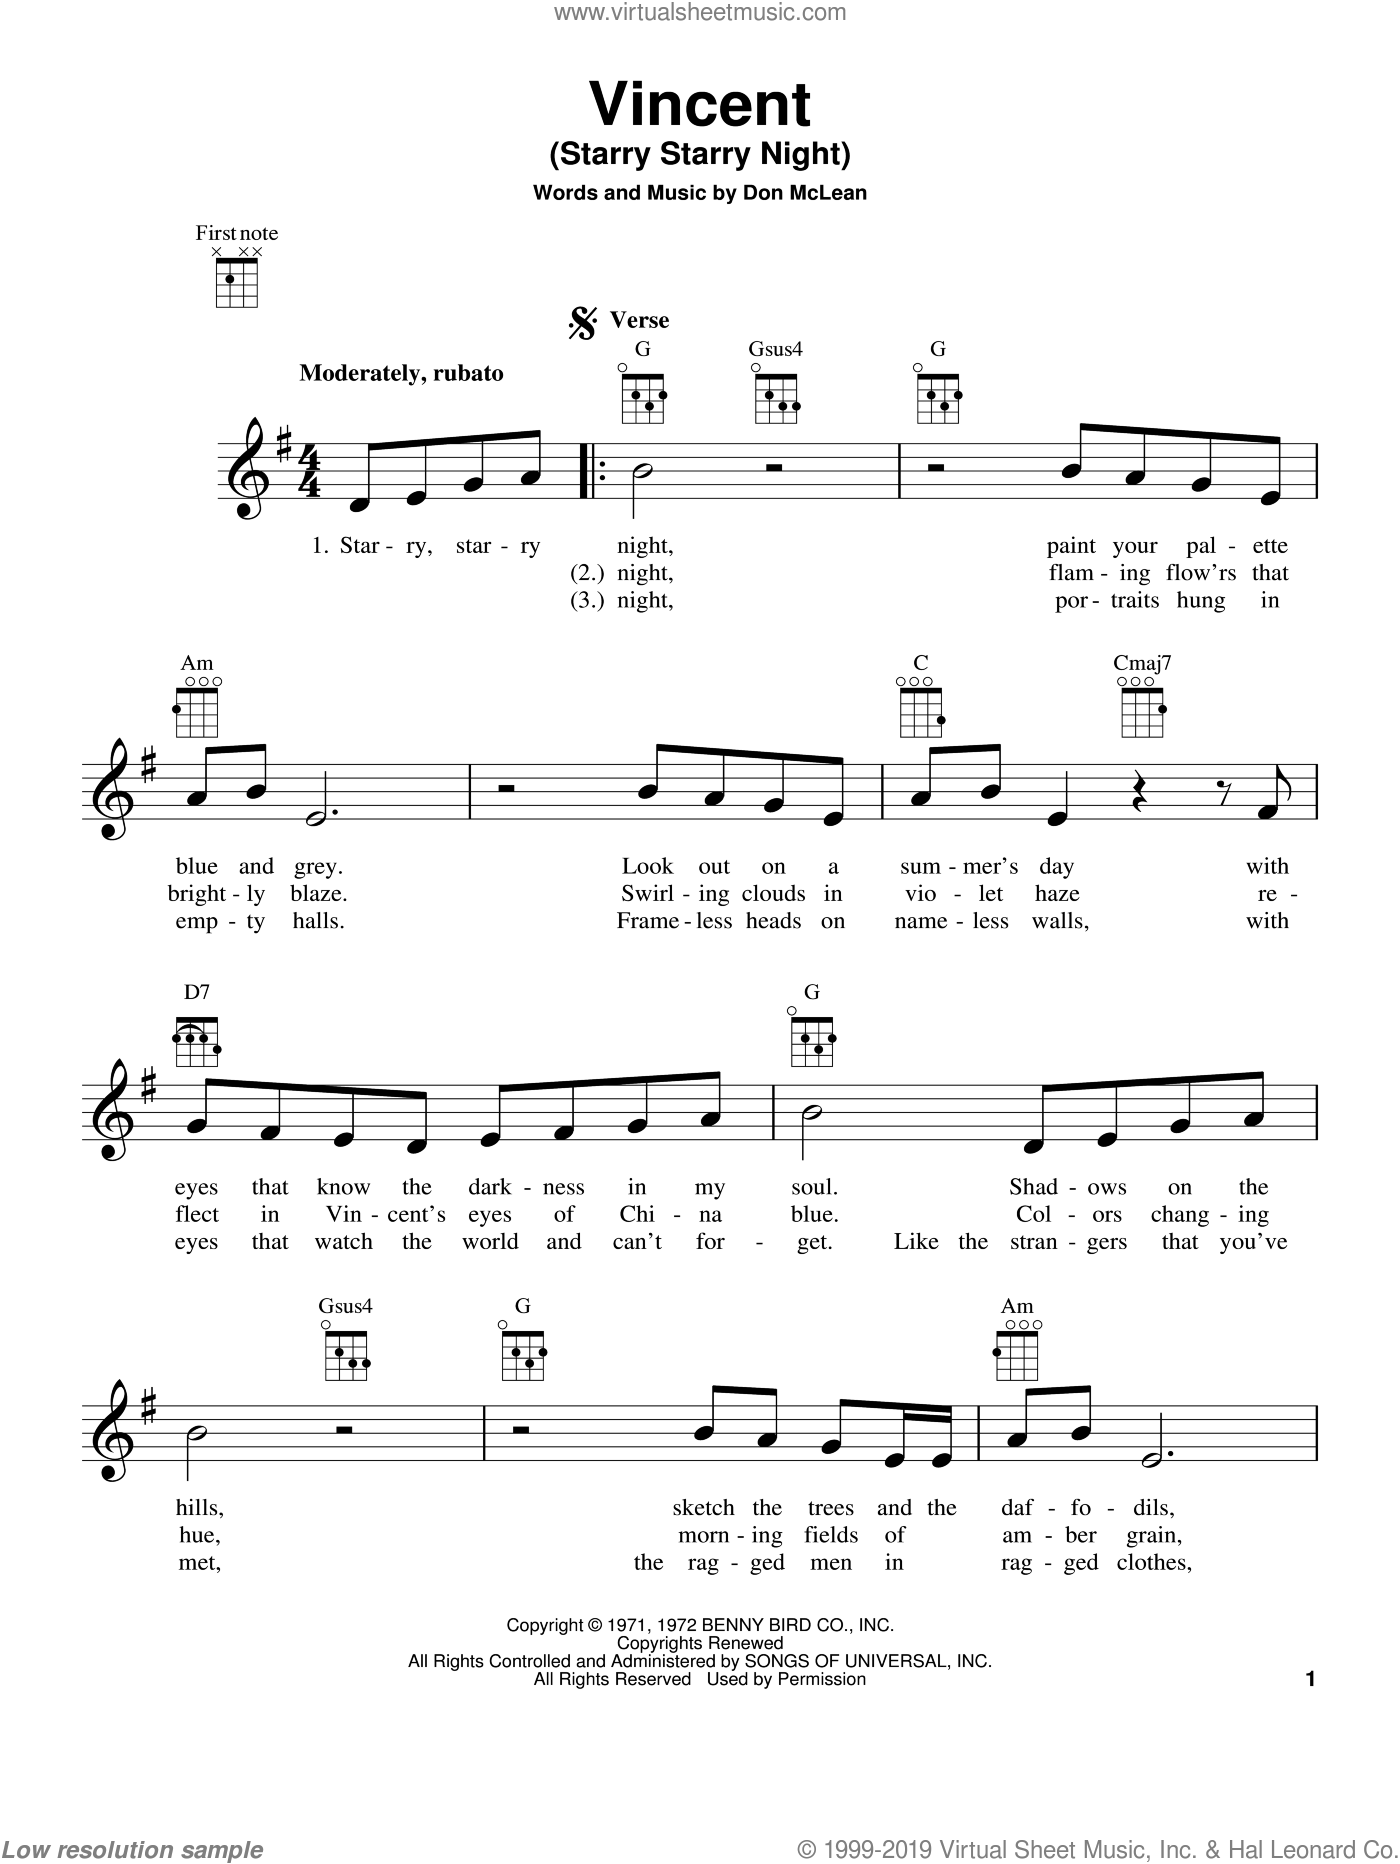 Vincent (Starry Starry Night) sheet music for ukulele by Don McLean, intermediate skill level